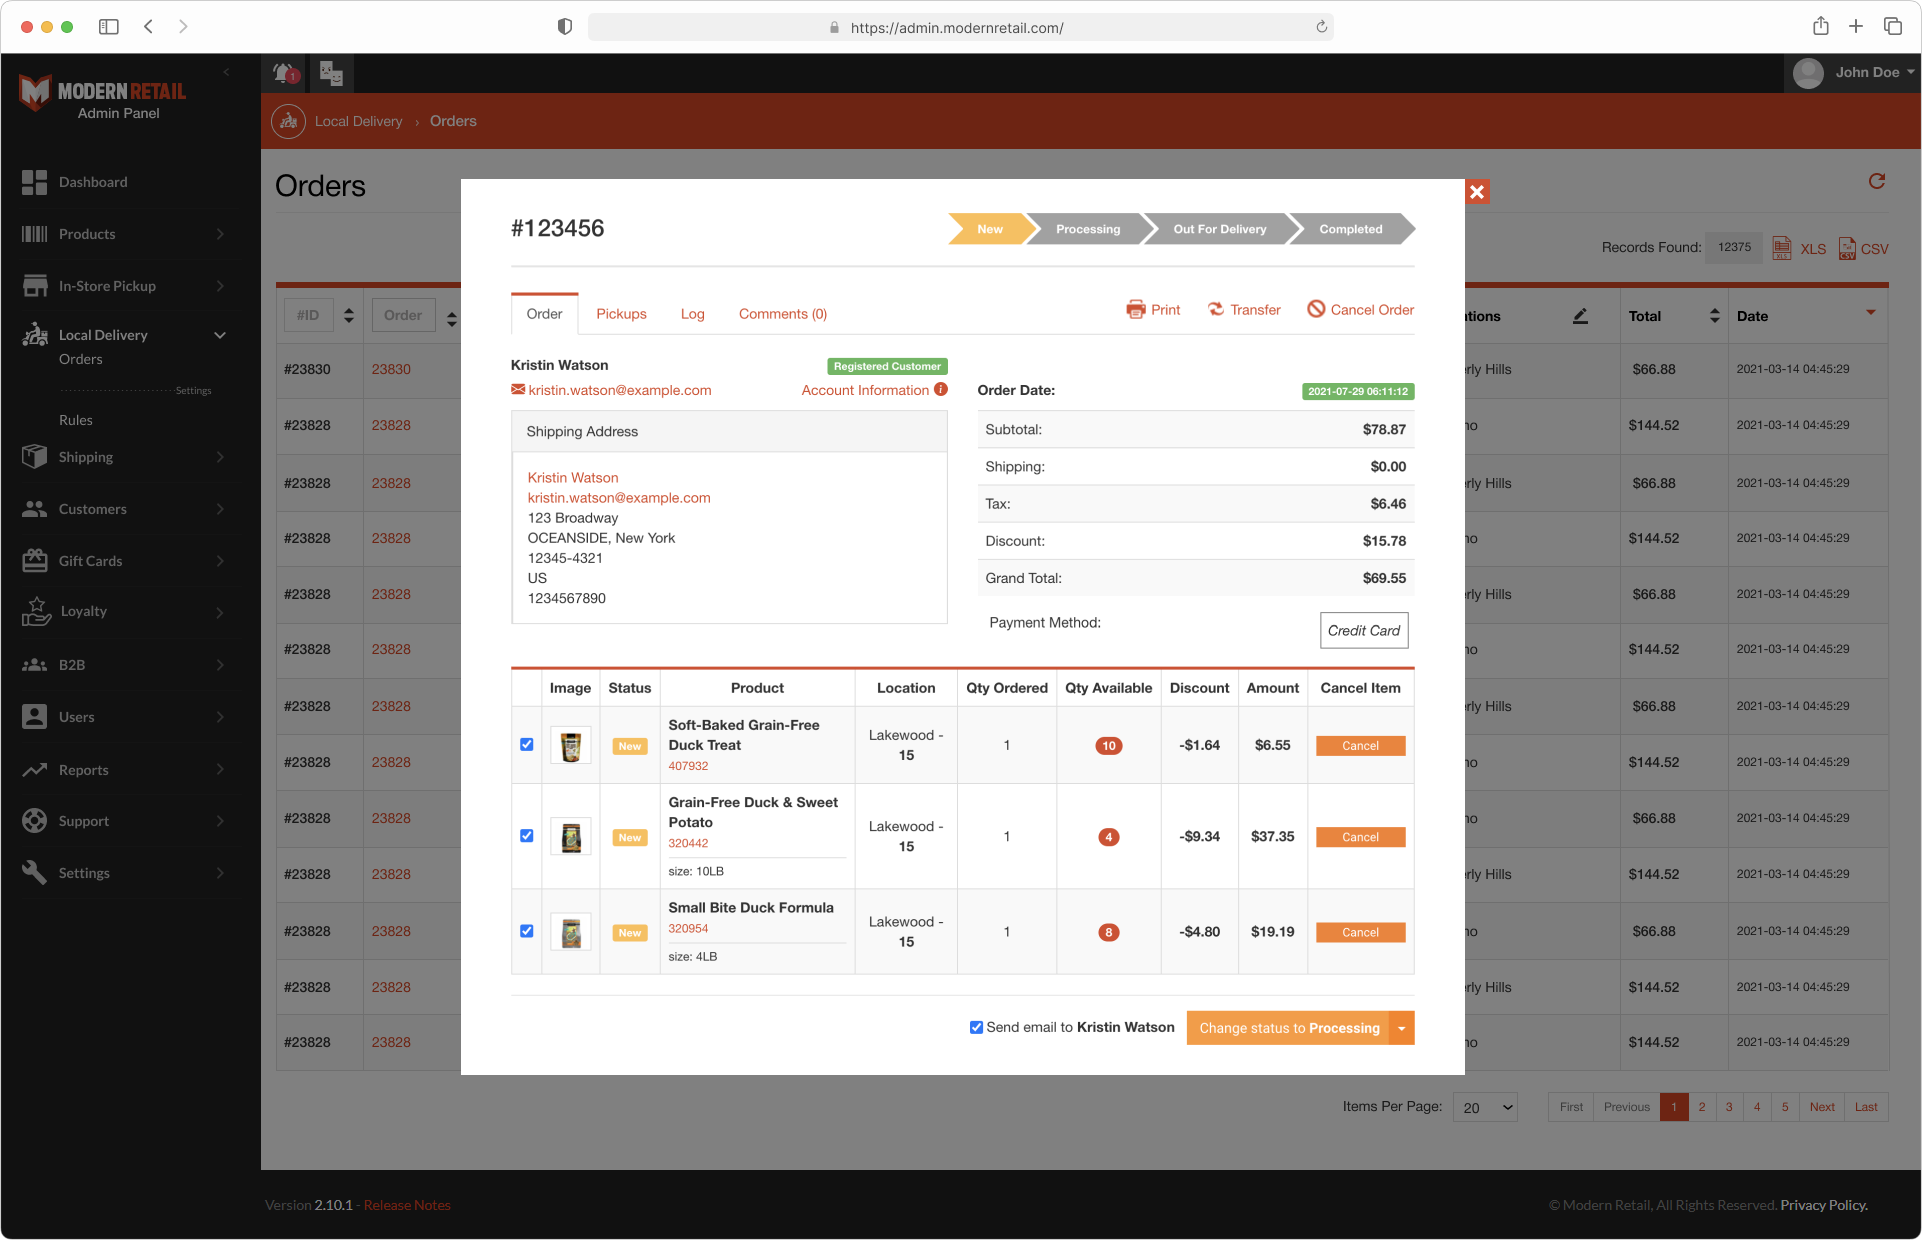 admin-panel-local-delivery-mr.png